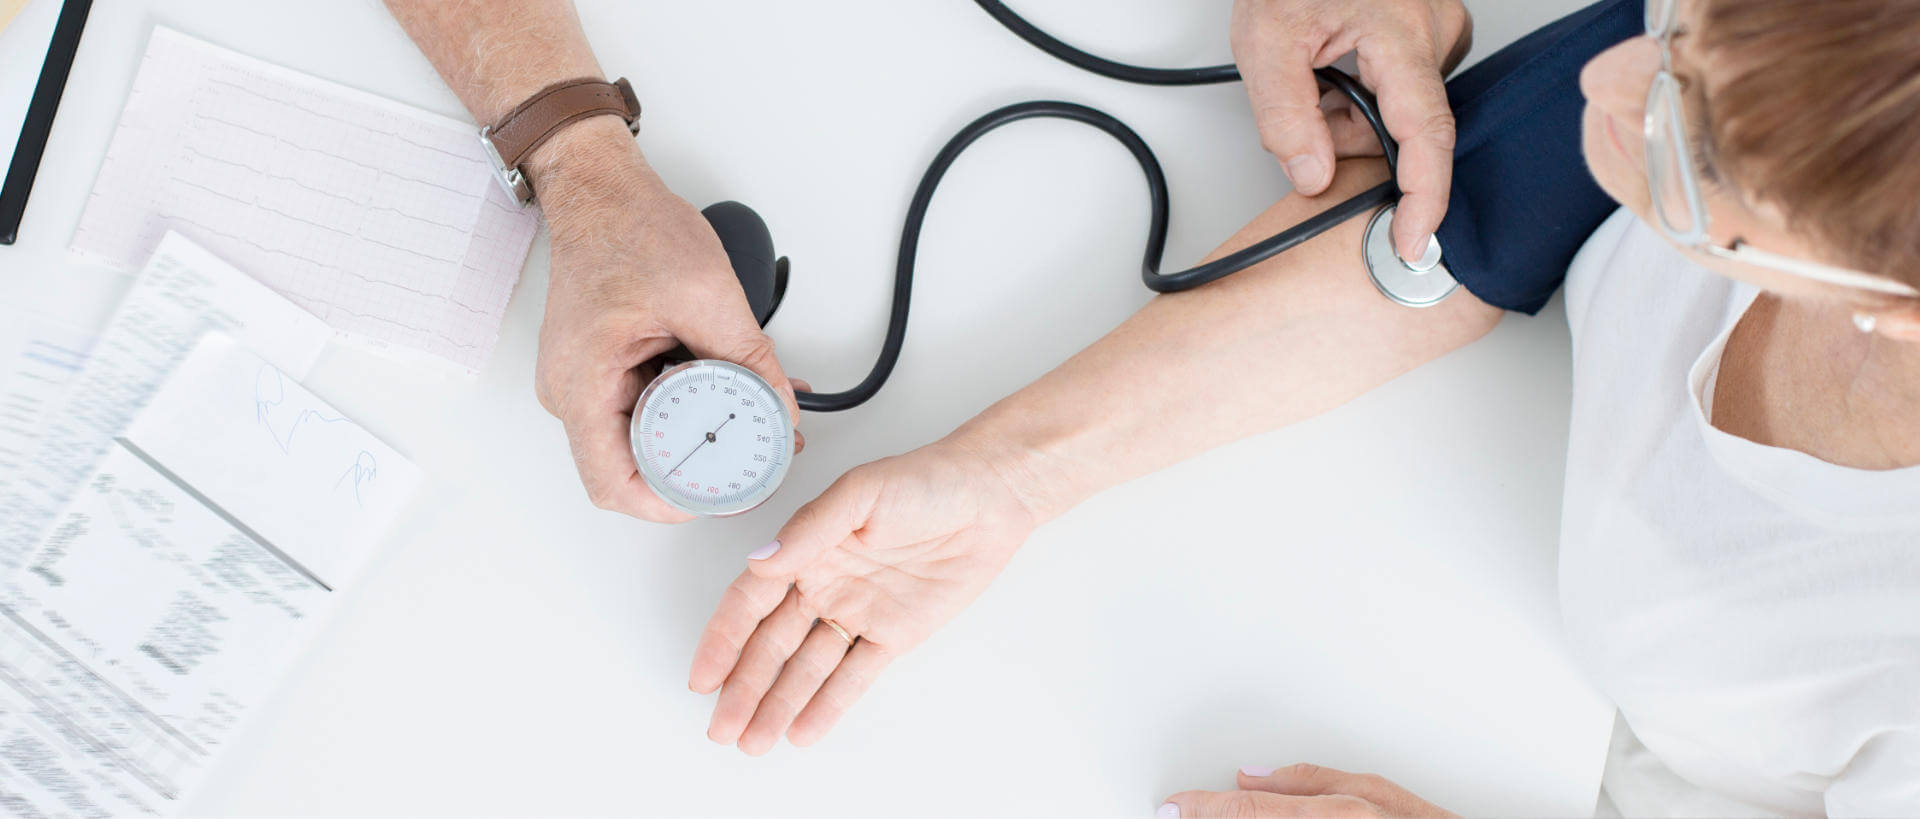 Patient having blood pressure taken by physician